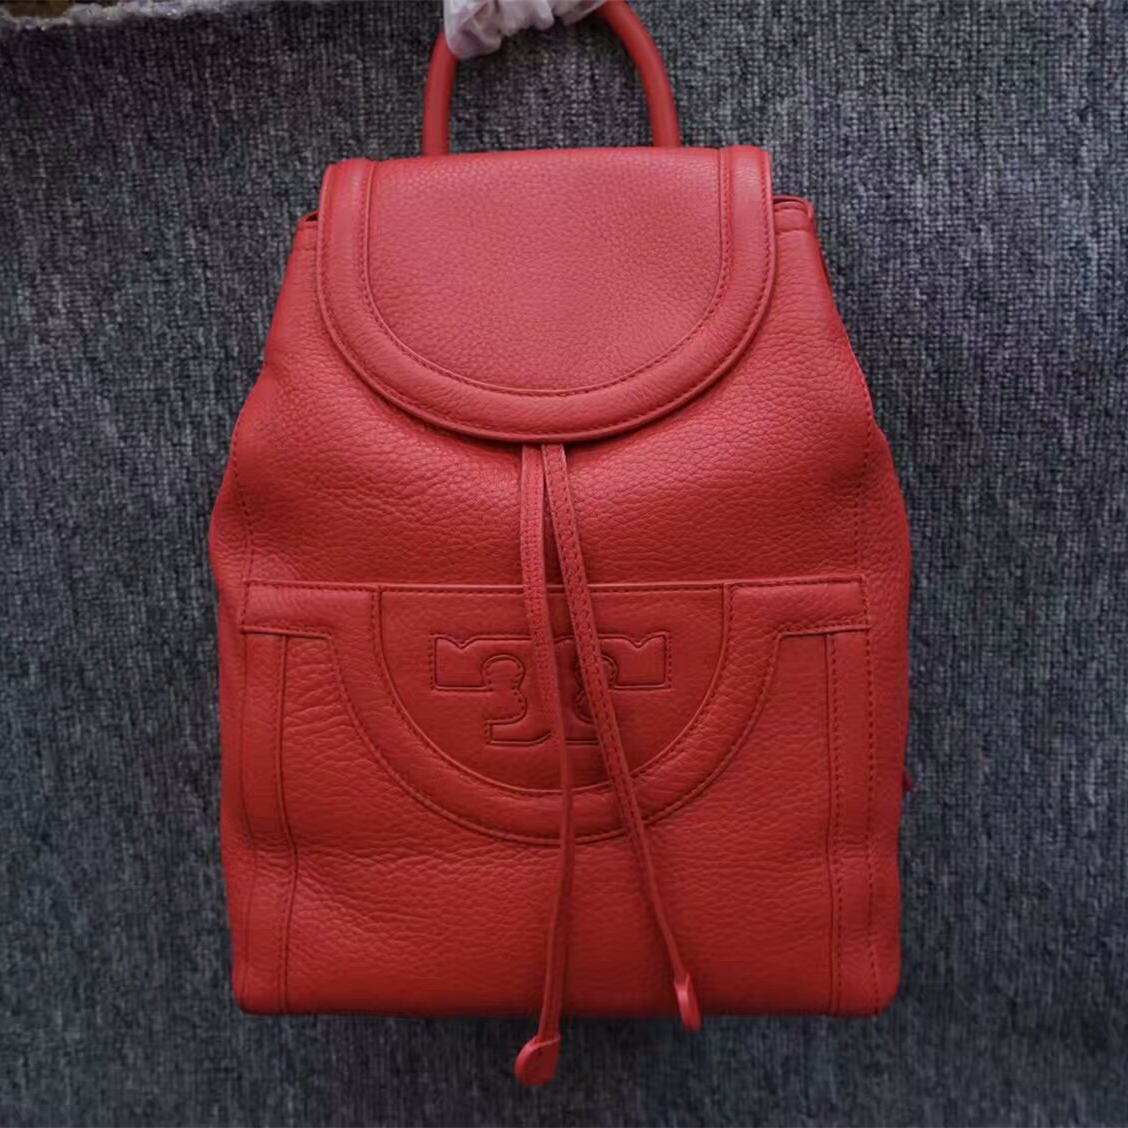 701e26d7d28 Tory Burch Serif T Backpack and 50 similar items. Mmexport1489585645205.  Mmexport1489585645205